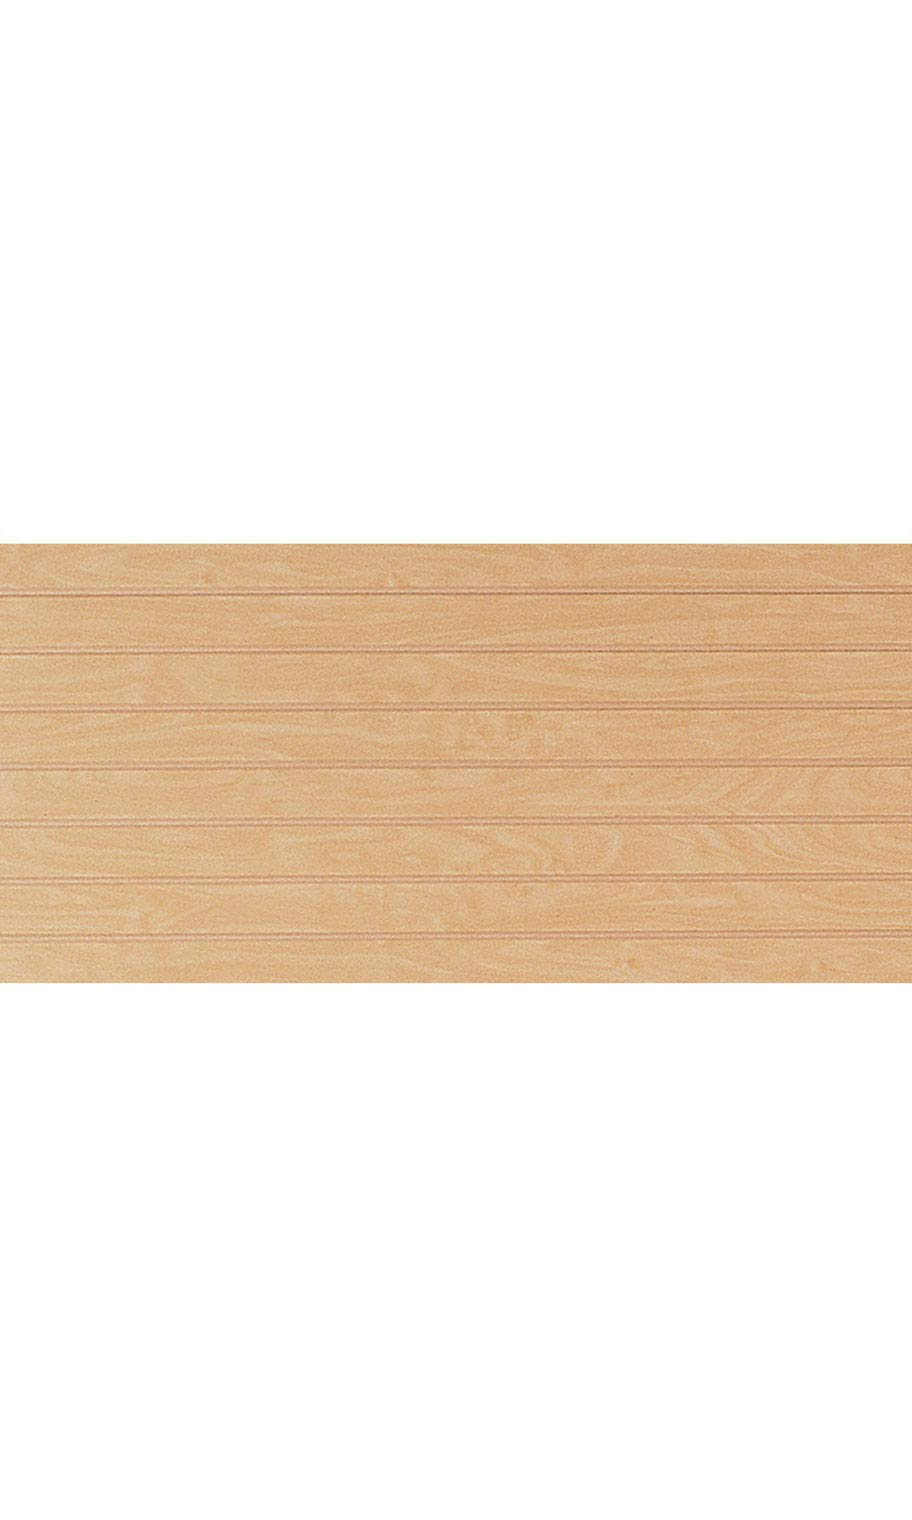 4 x 2 Foot Horizontal Maple Slatwall Easy Panels - Pack of 2